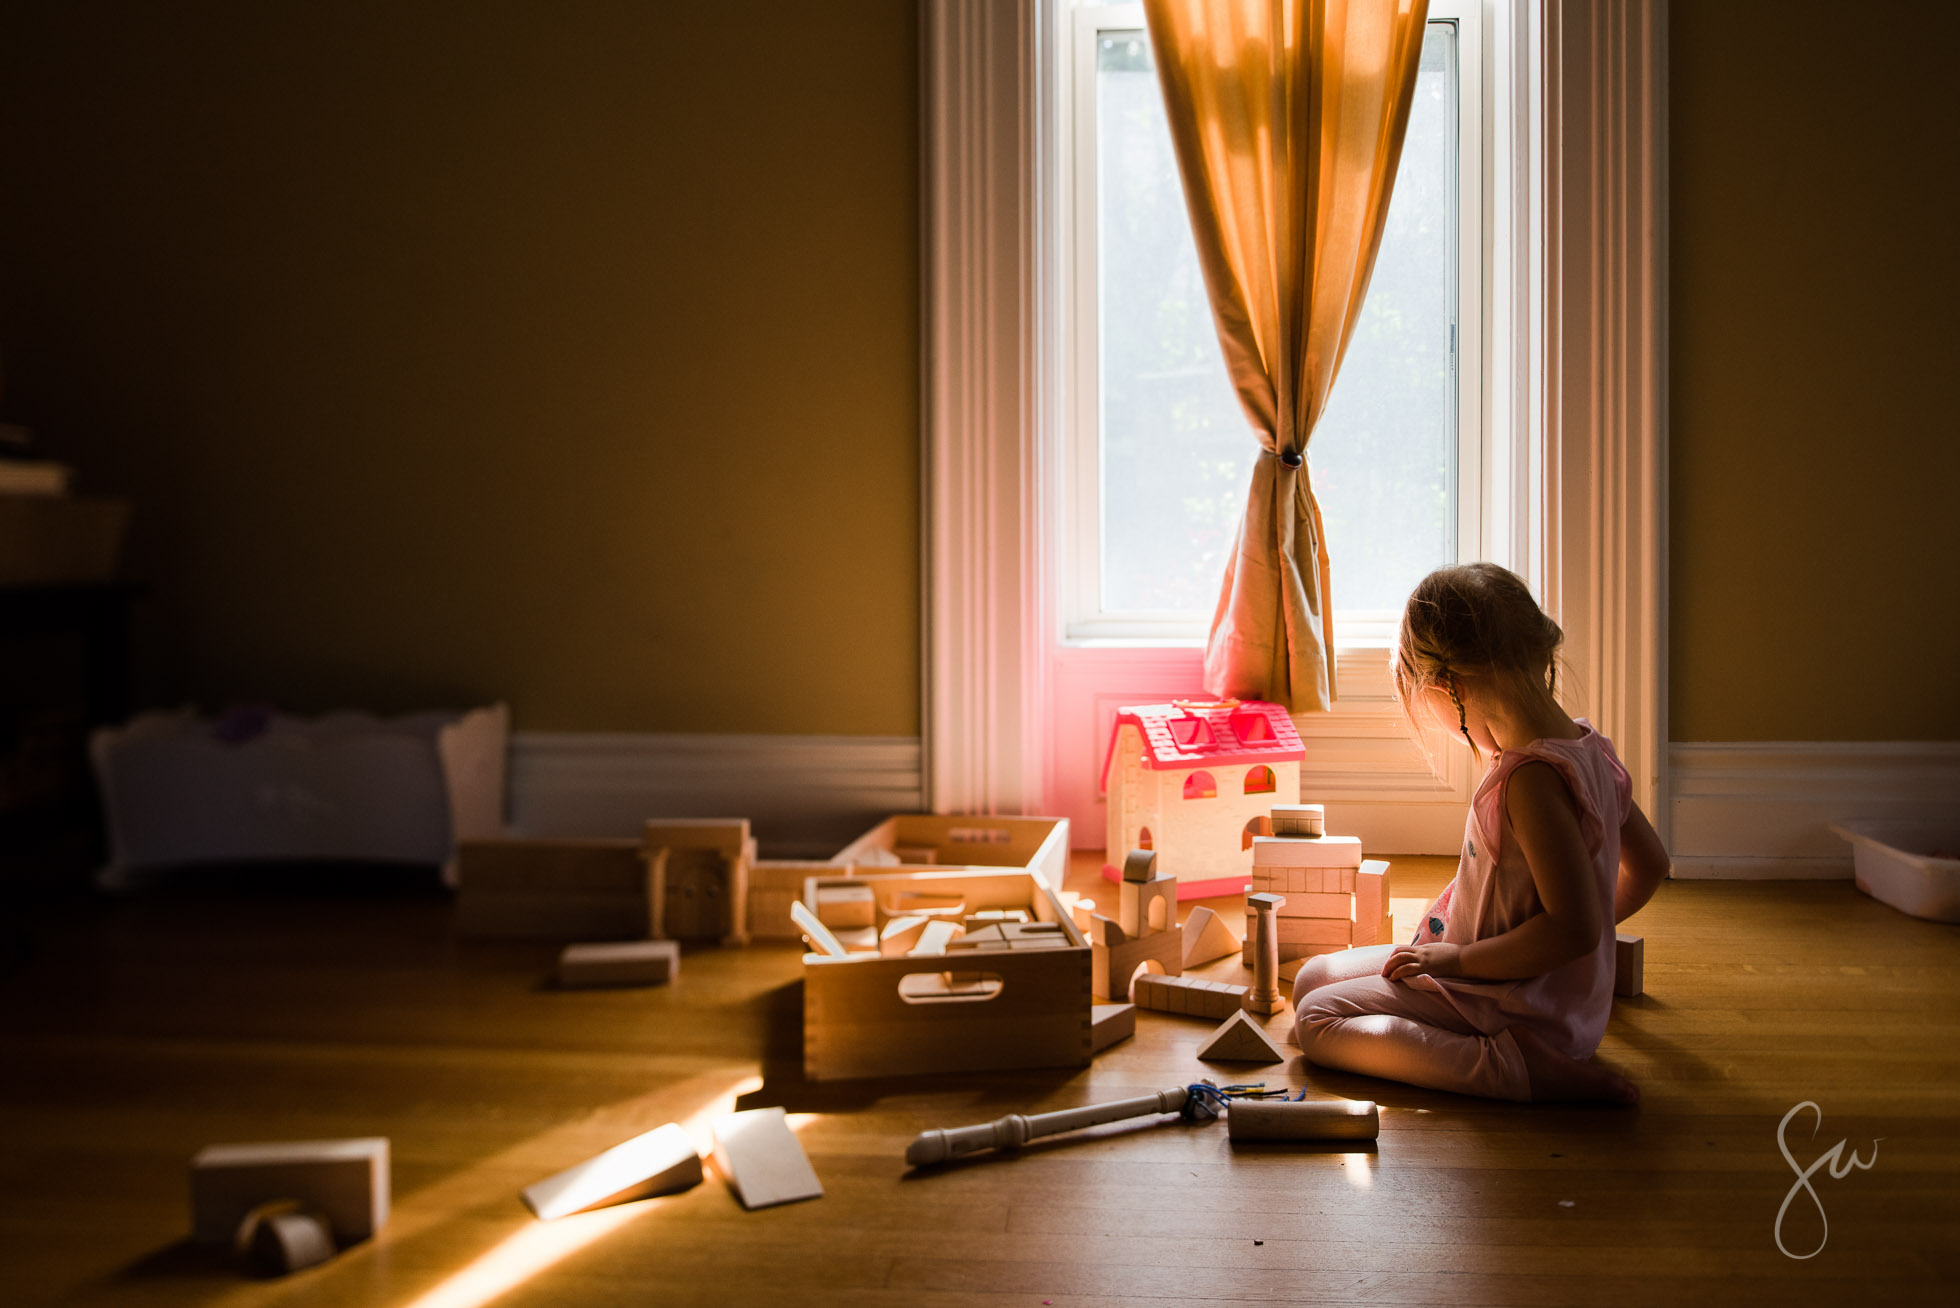 Everyday-Life-Photo-of-Little-Girl-Playing-with-Wooden-Blocks-in-Beautiful-Golden-Window-Light-by-Sarah-Wilkerson-7339